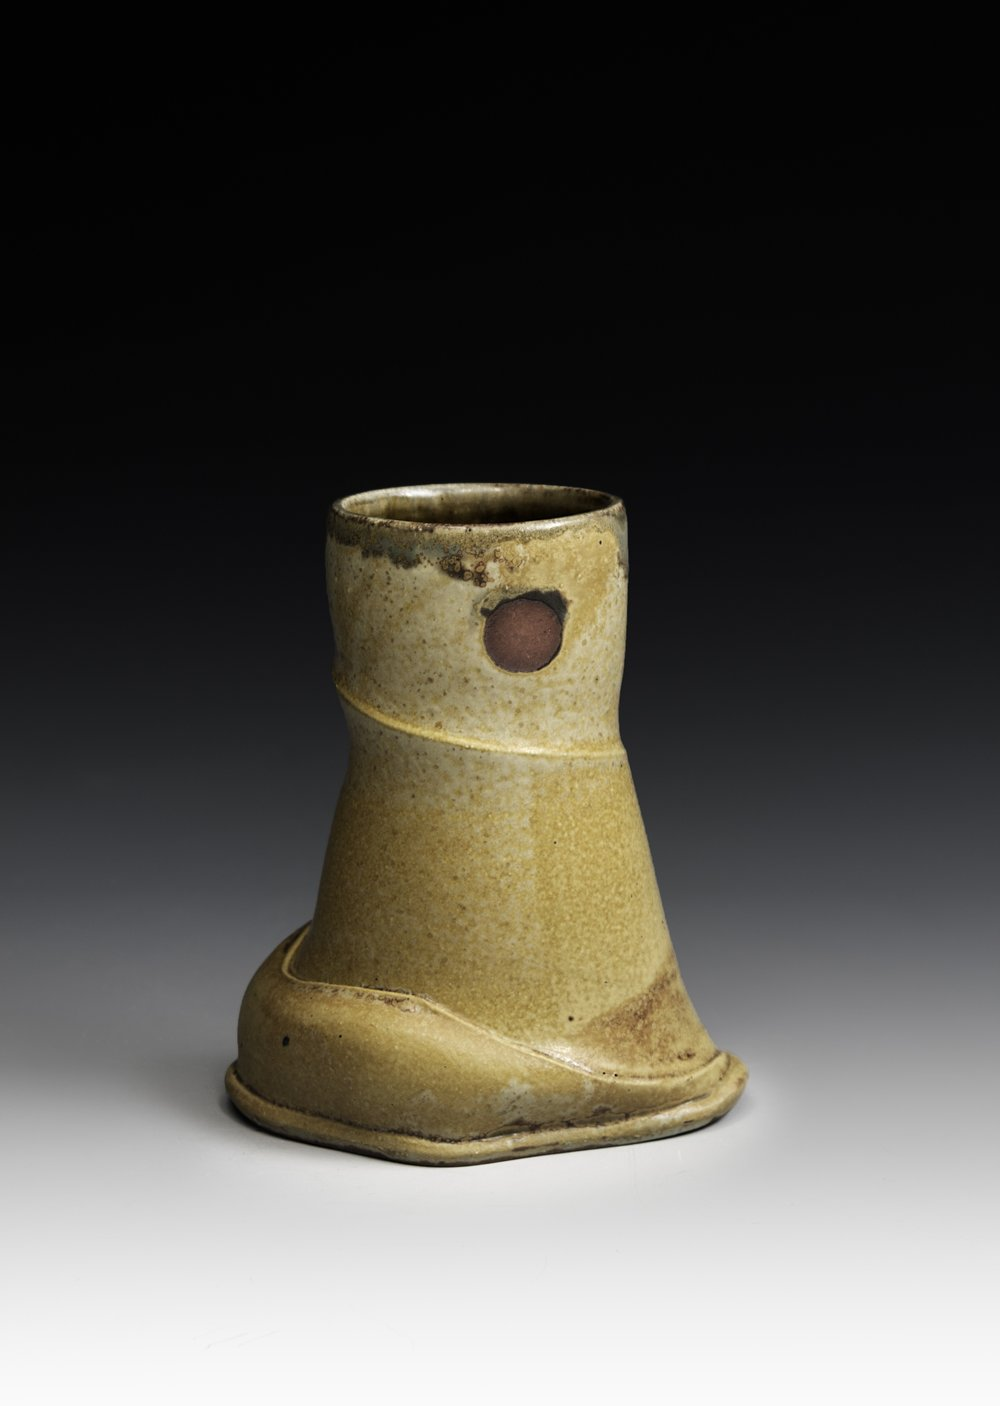 joerling,altered vase, 6.5 x 3.5 x 5, stoneware.jpg